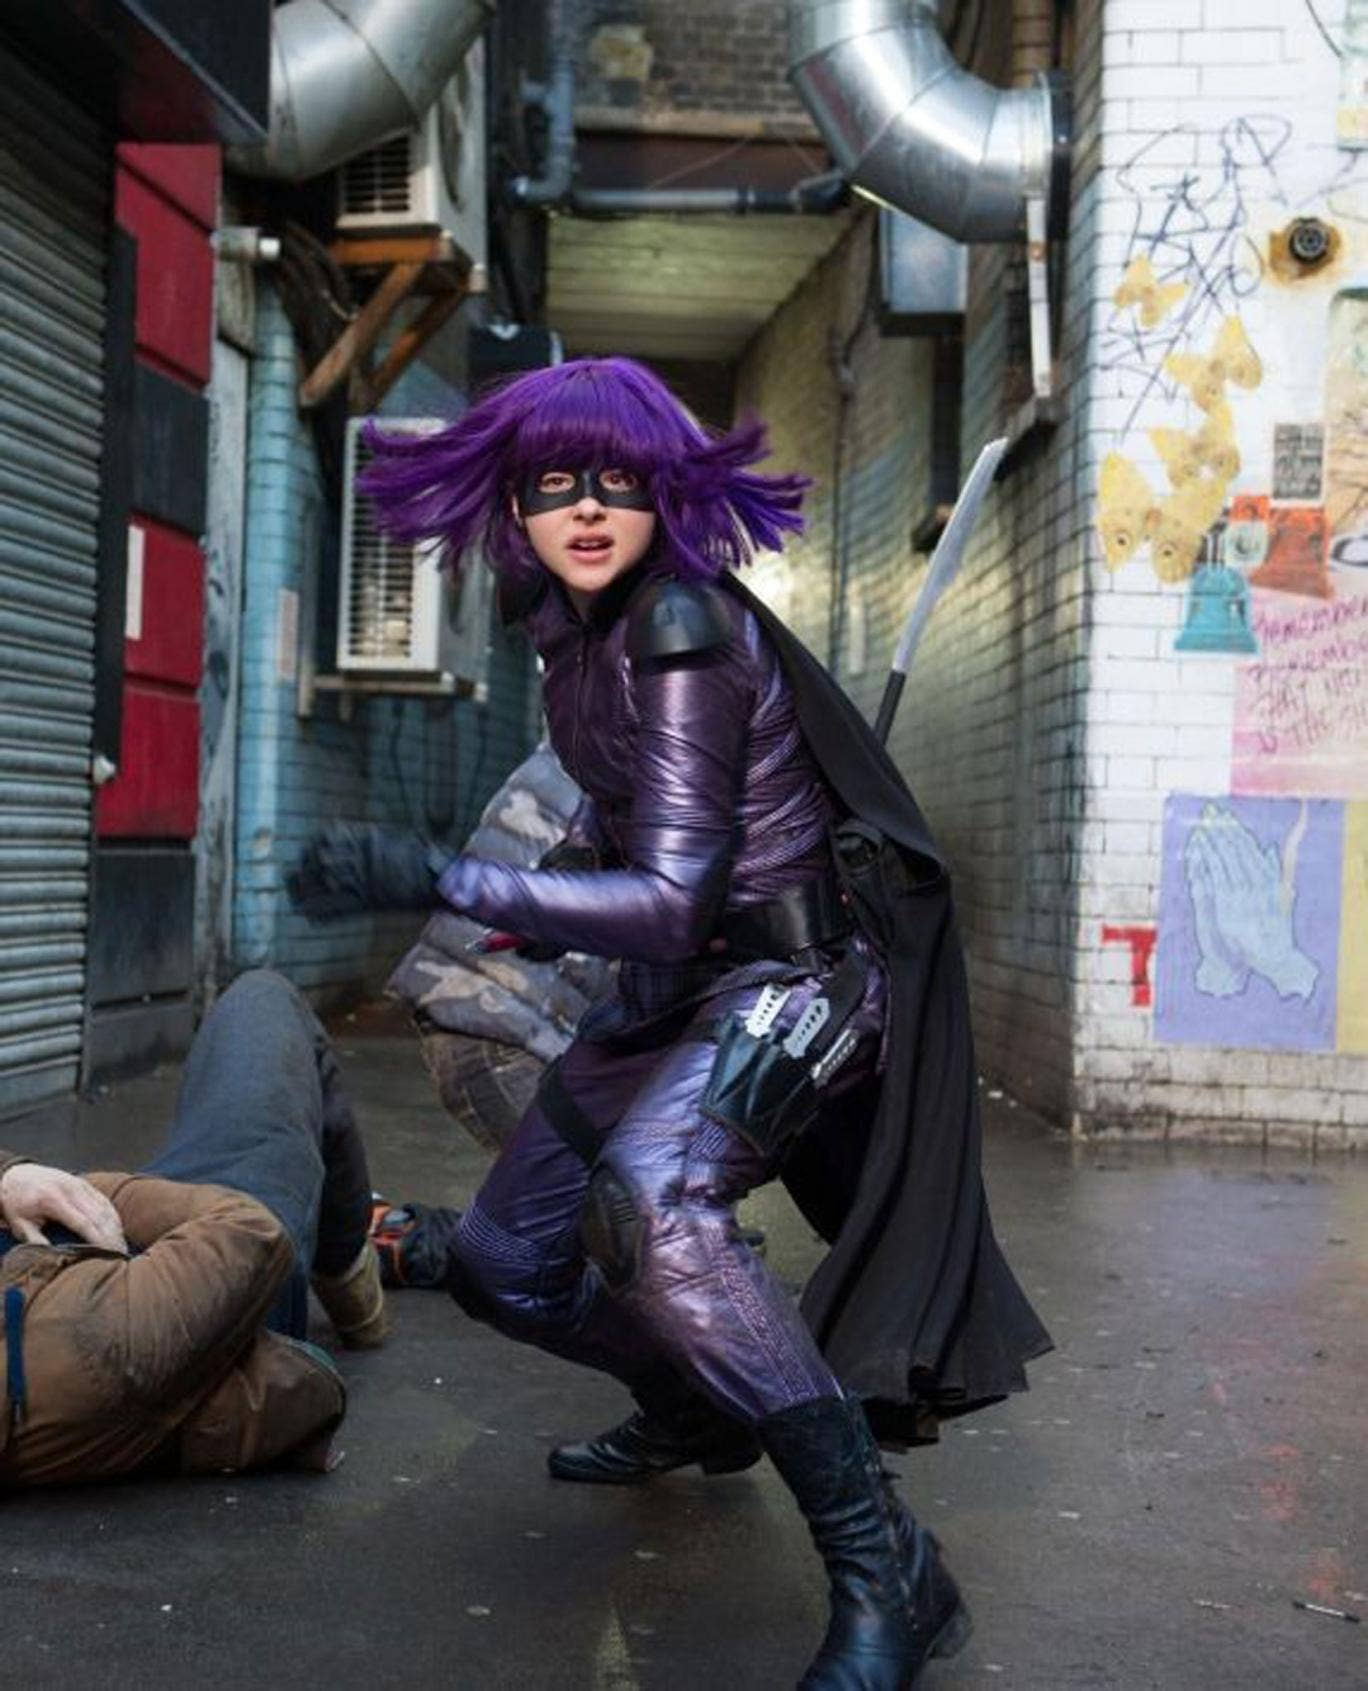 Short cuts: Chloë Grace Moretz takes up the sword again as pint-sized vigilante Hit-Girl in 'Kick-Ass 2'